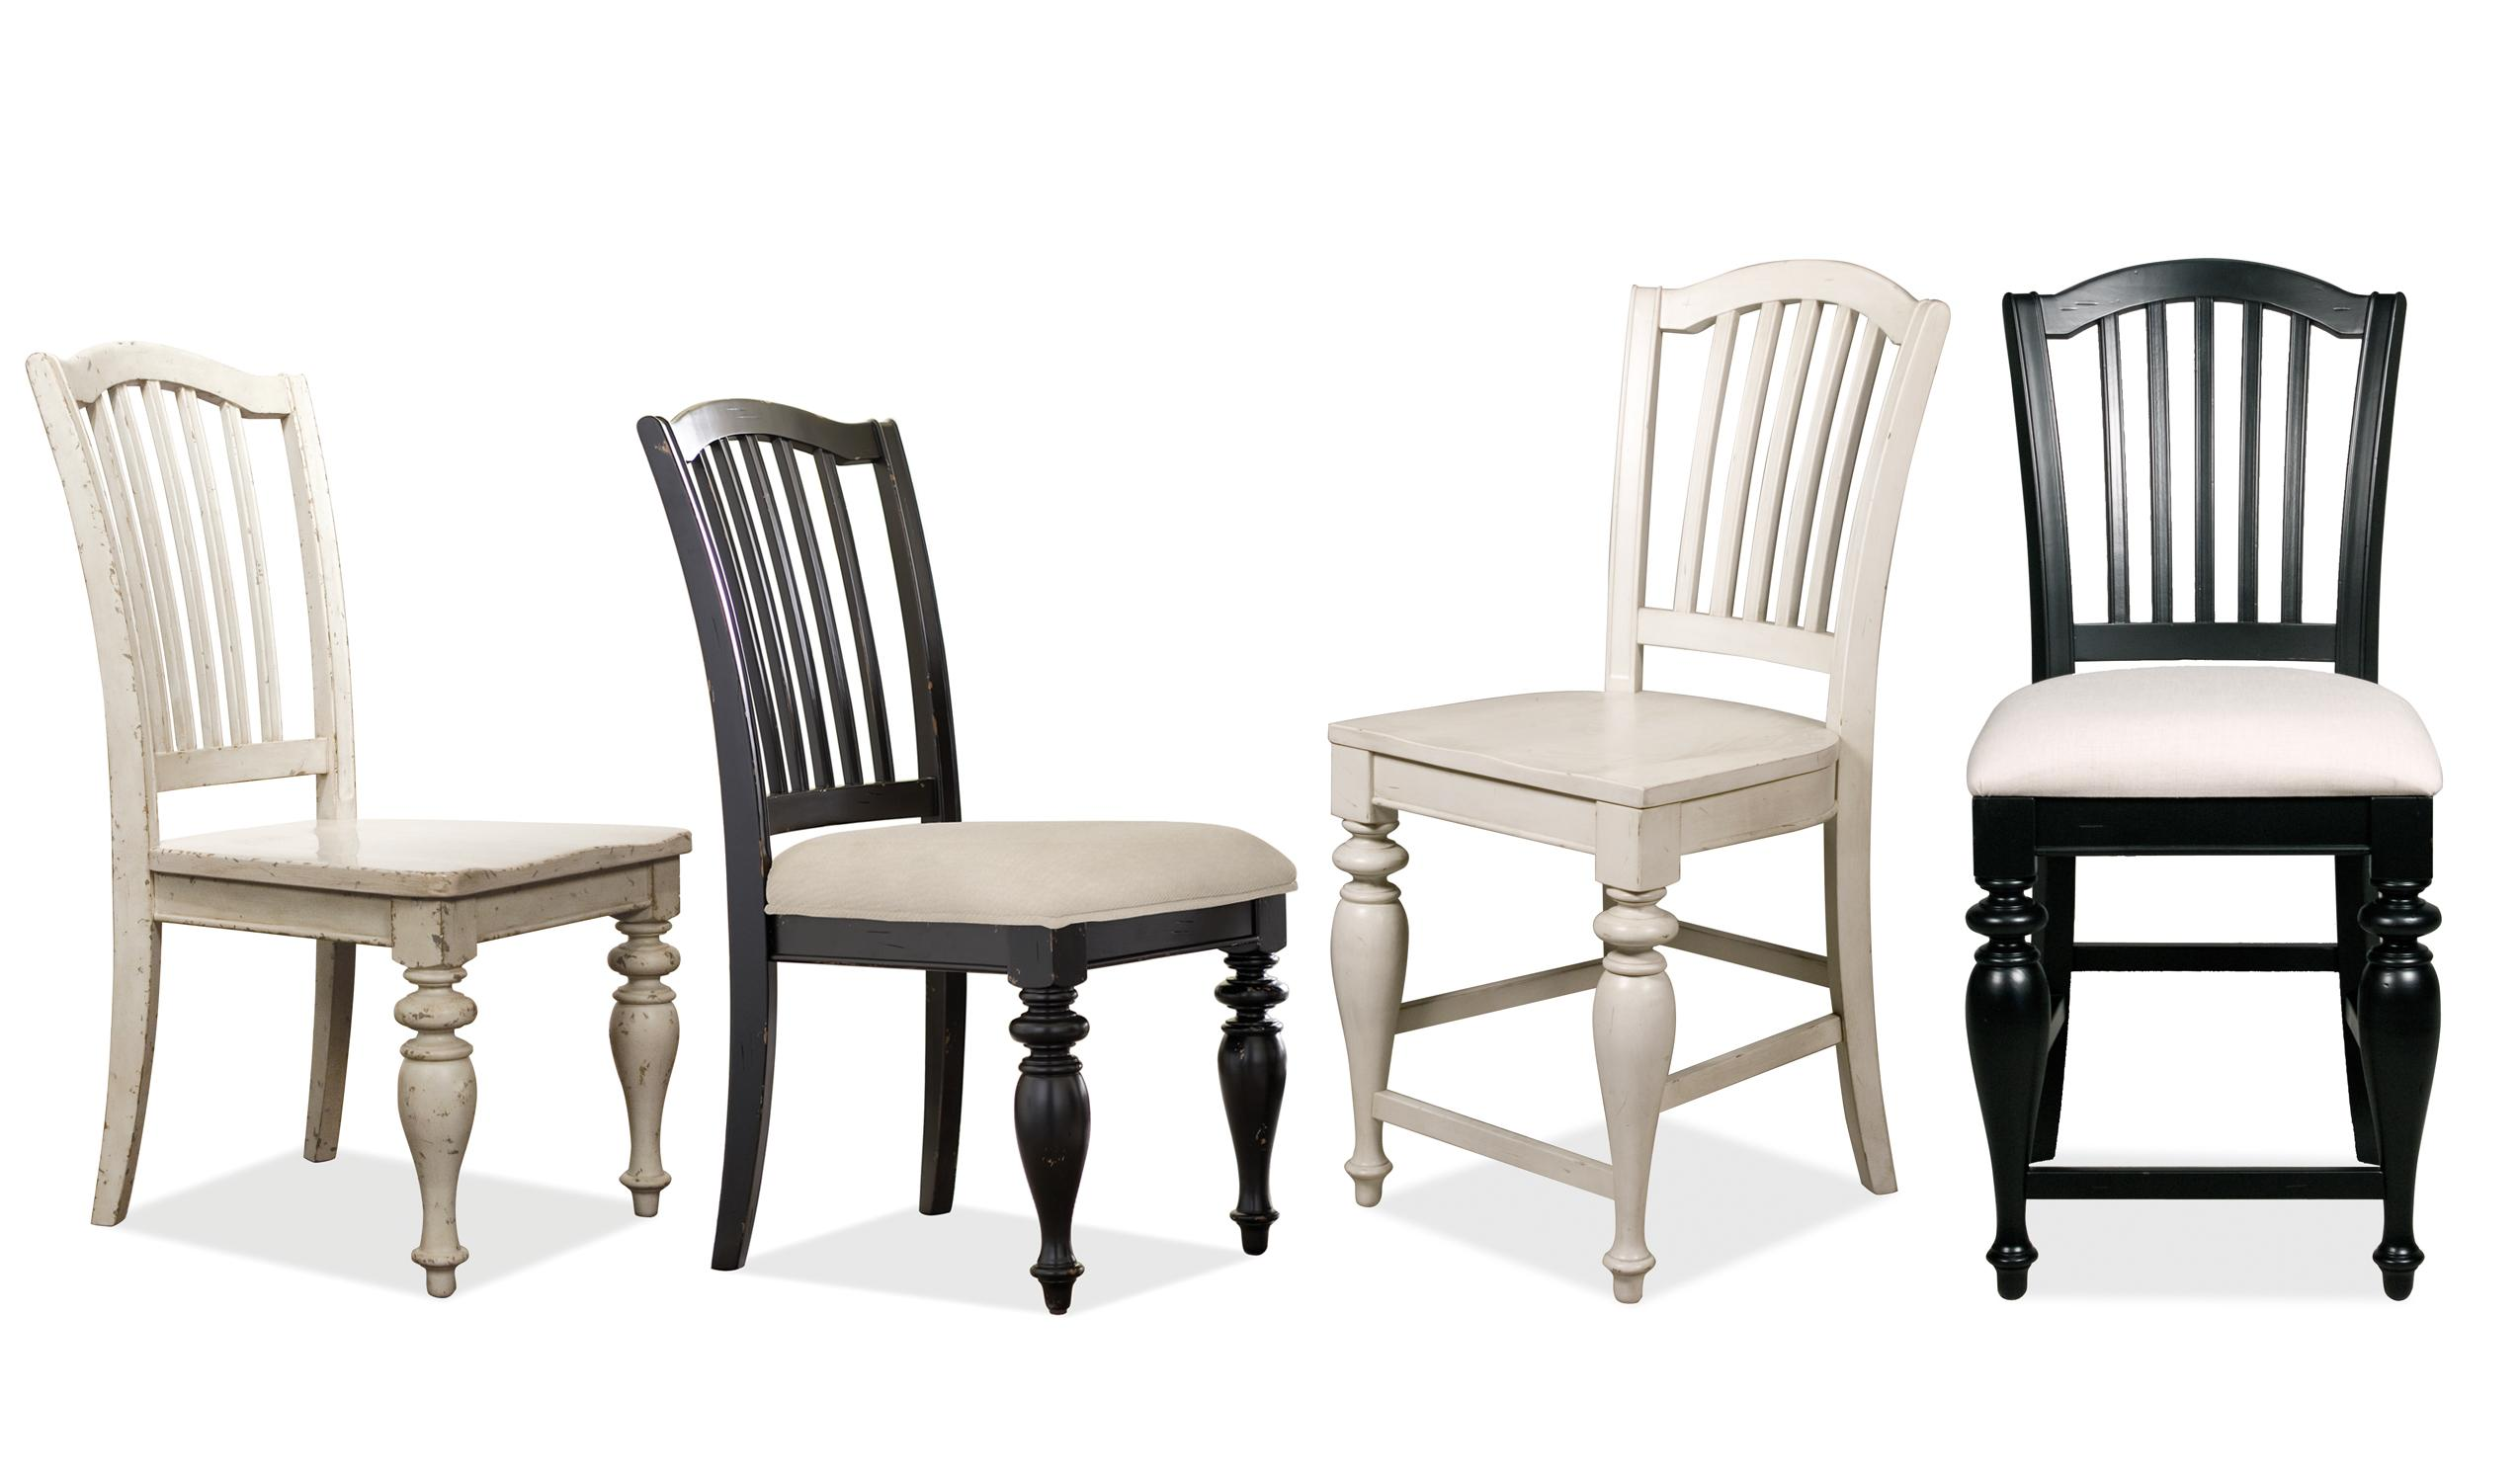 Riverside Furniture Mix-N-Match Chairs 36458 Dining Side ...